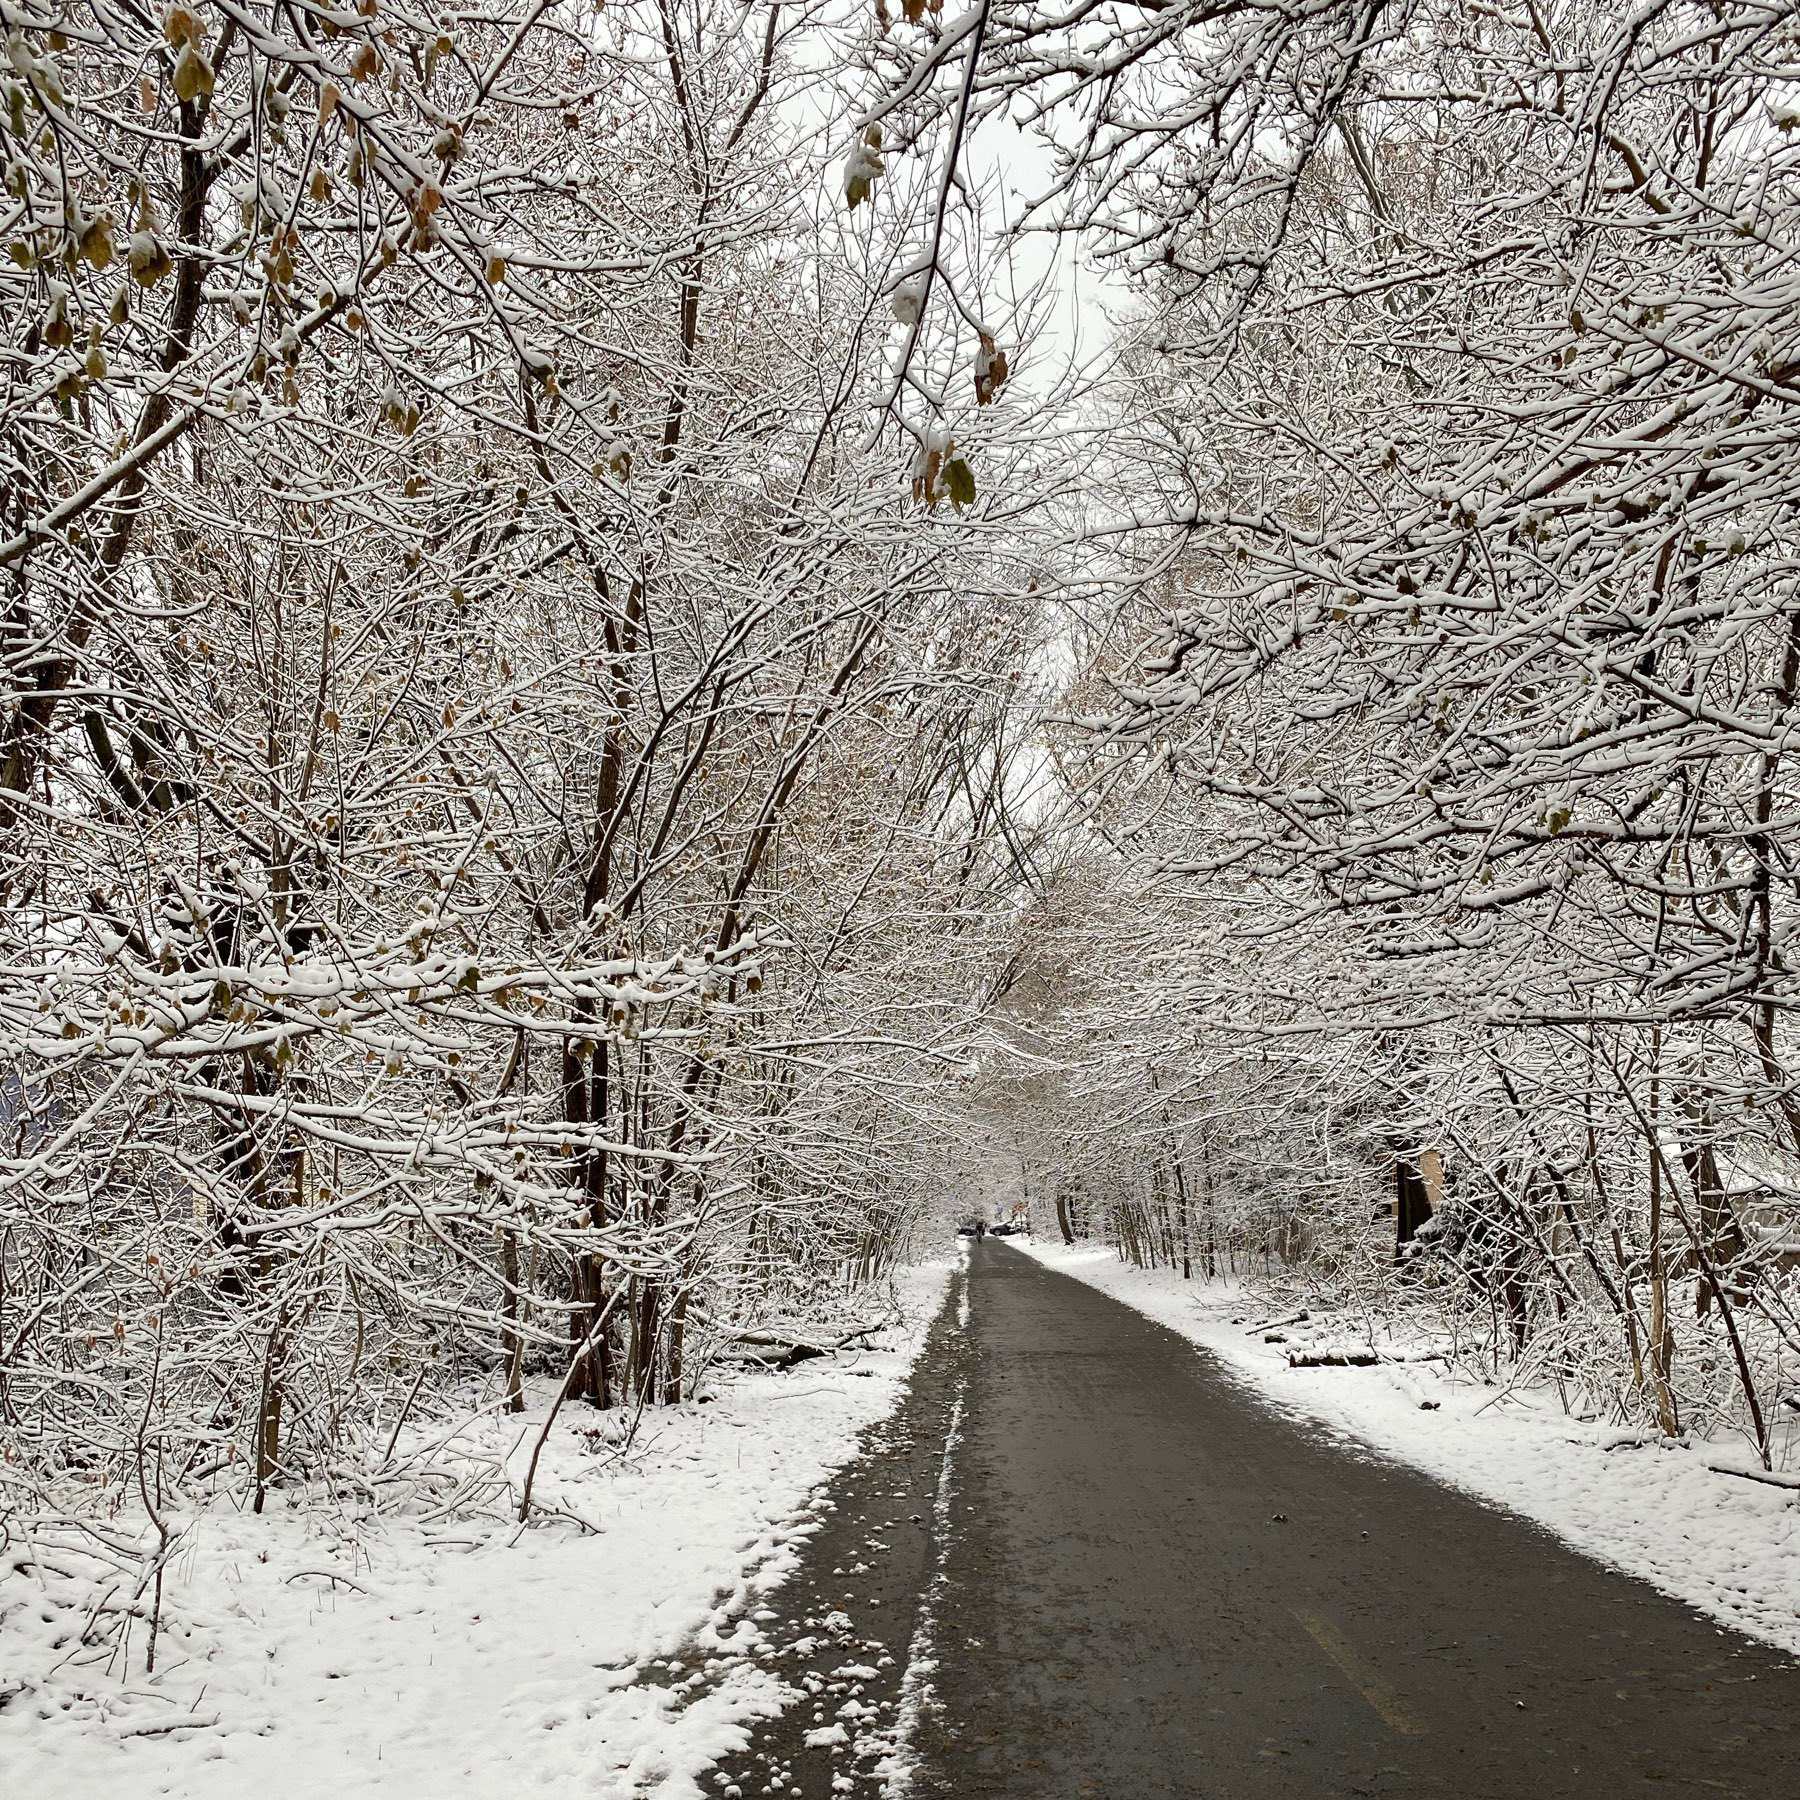 snow covered winter trees surrounding a long paved bikeway